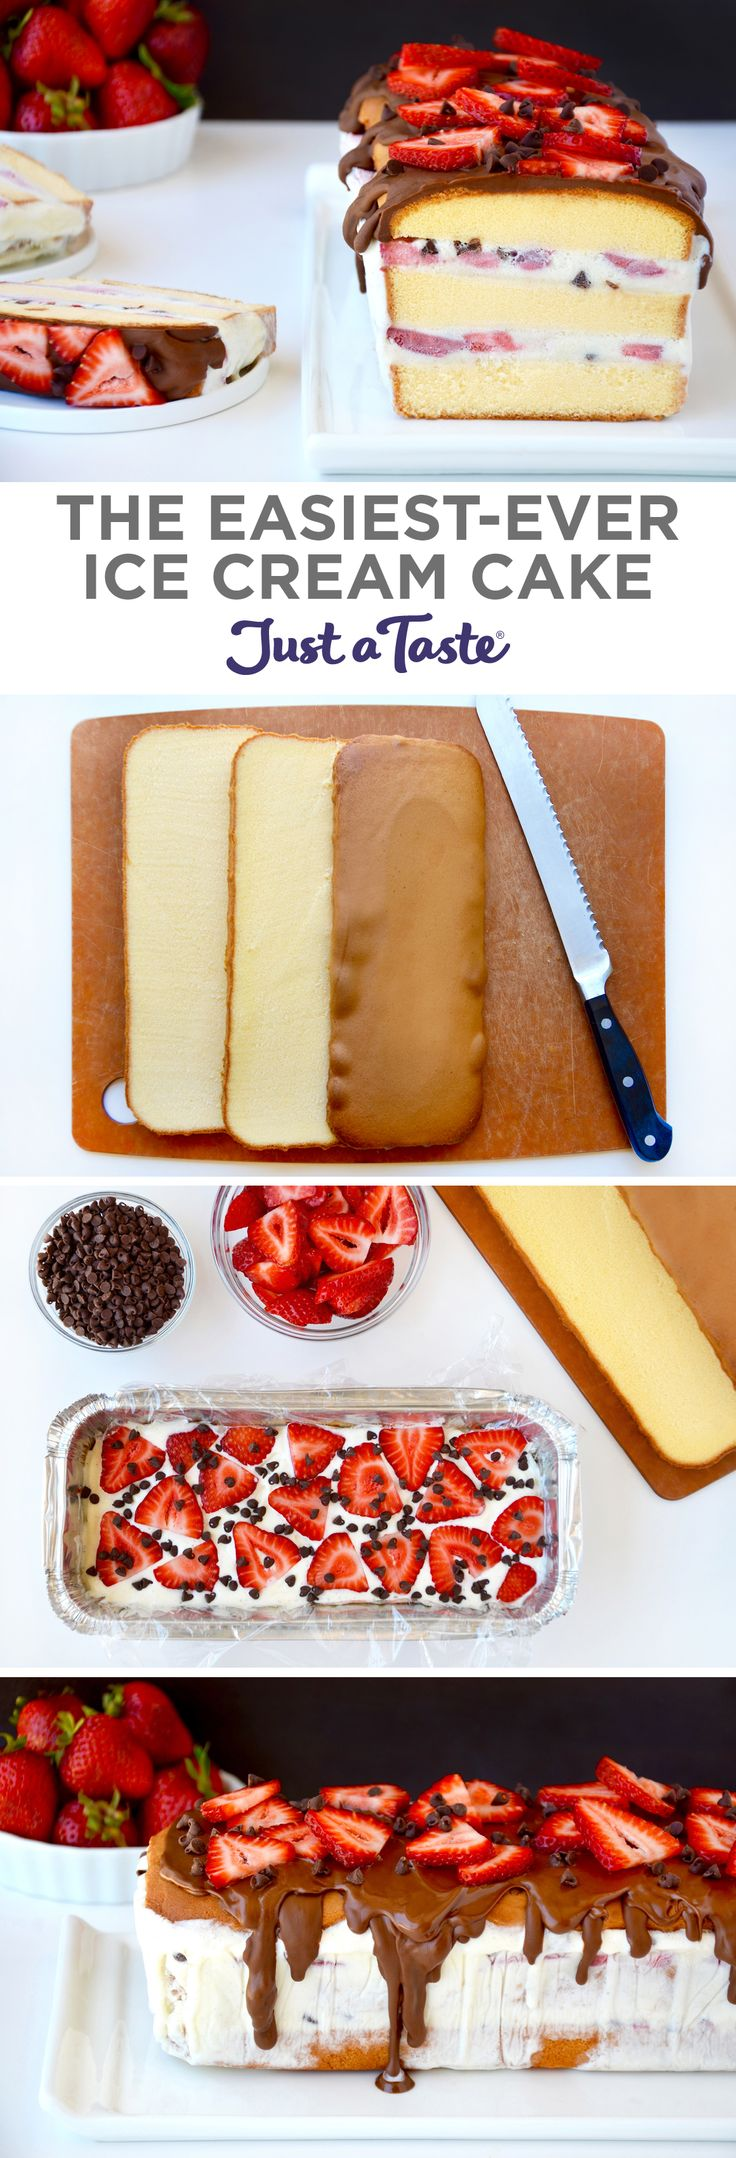 The Easiest-Ever Ice Cream Cake | recipe via justataste.com